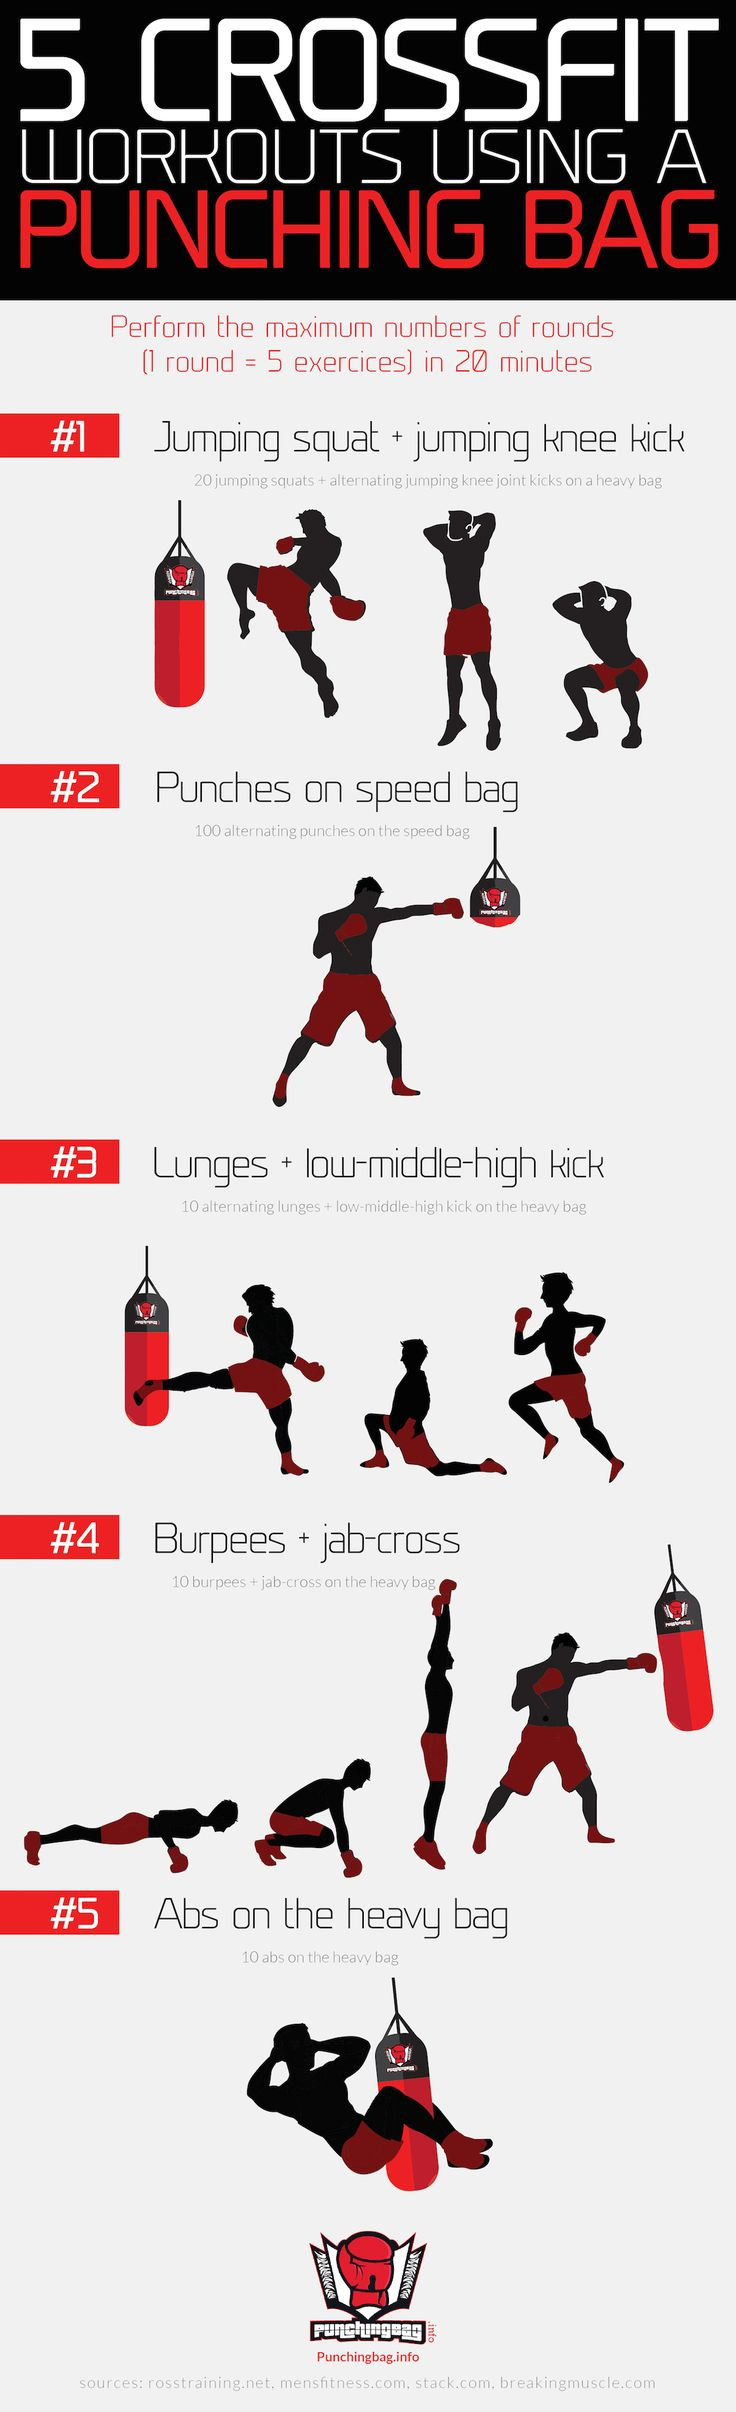 5 crossfit workouts using a punching bag by Punchingbag.info psoas trigger points lower backs